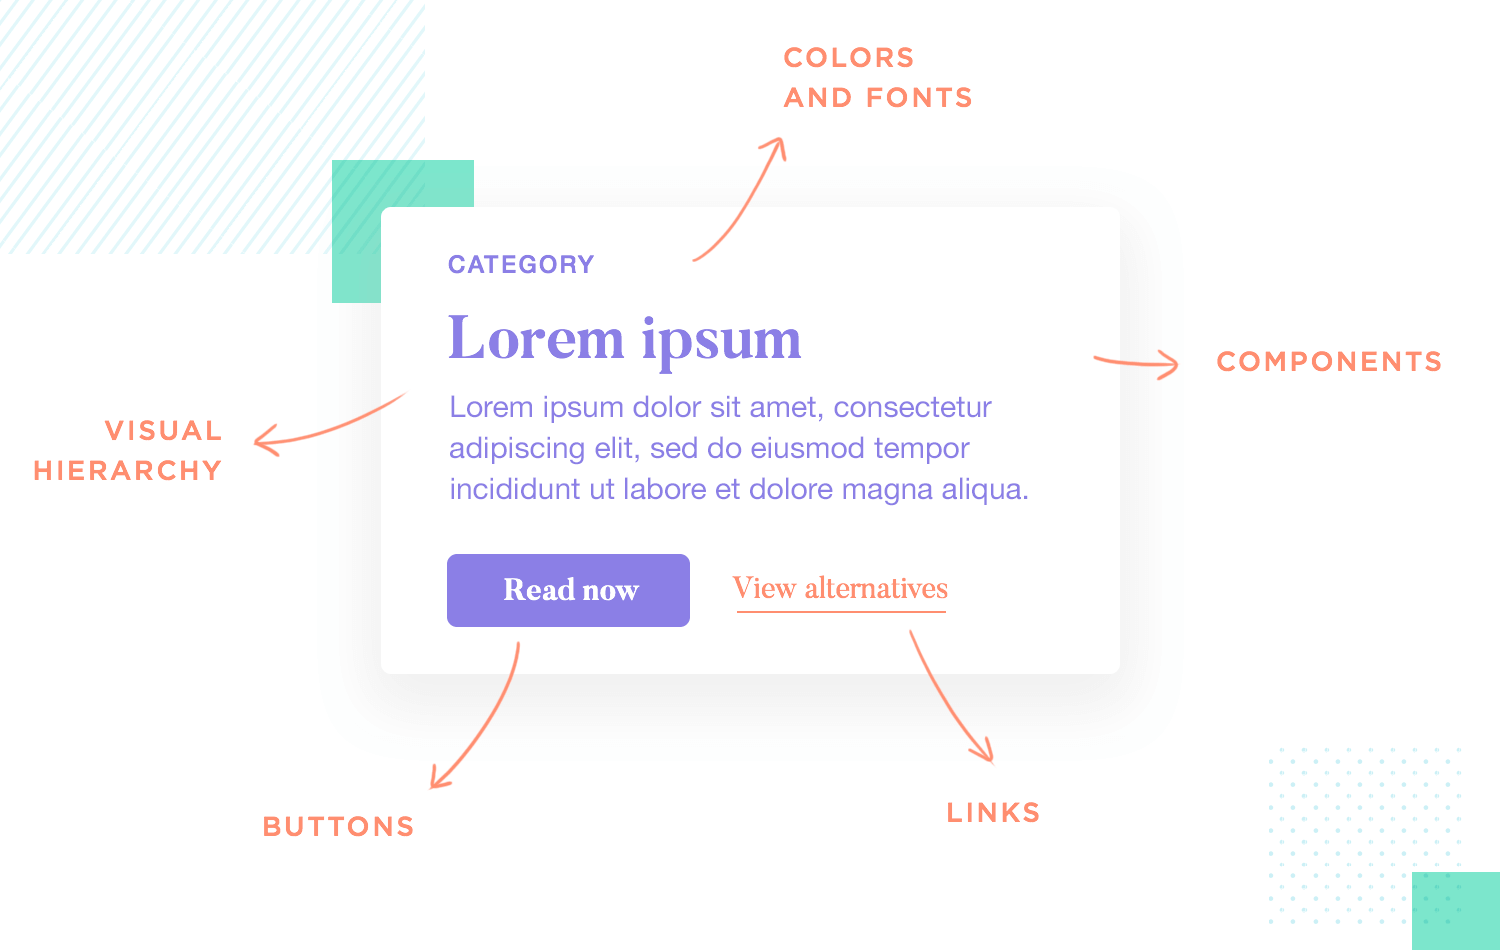 example of different parts of ux design like visual hierarchy or button design